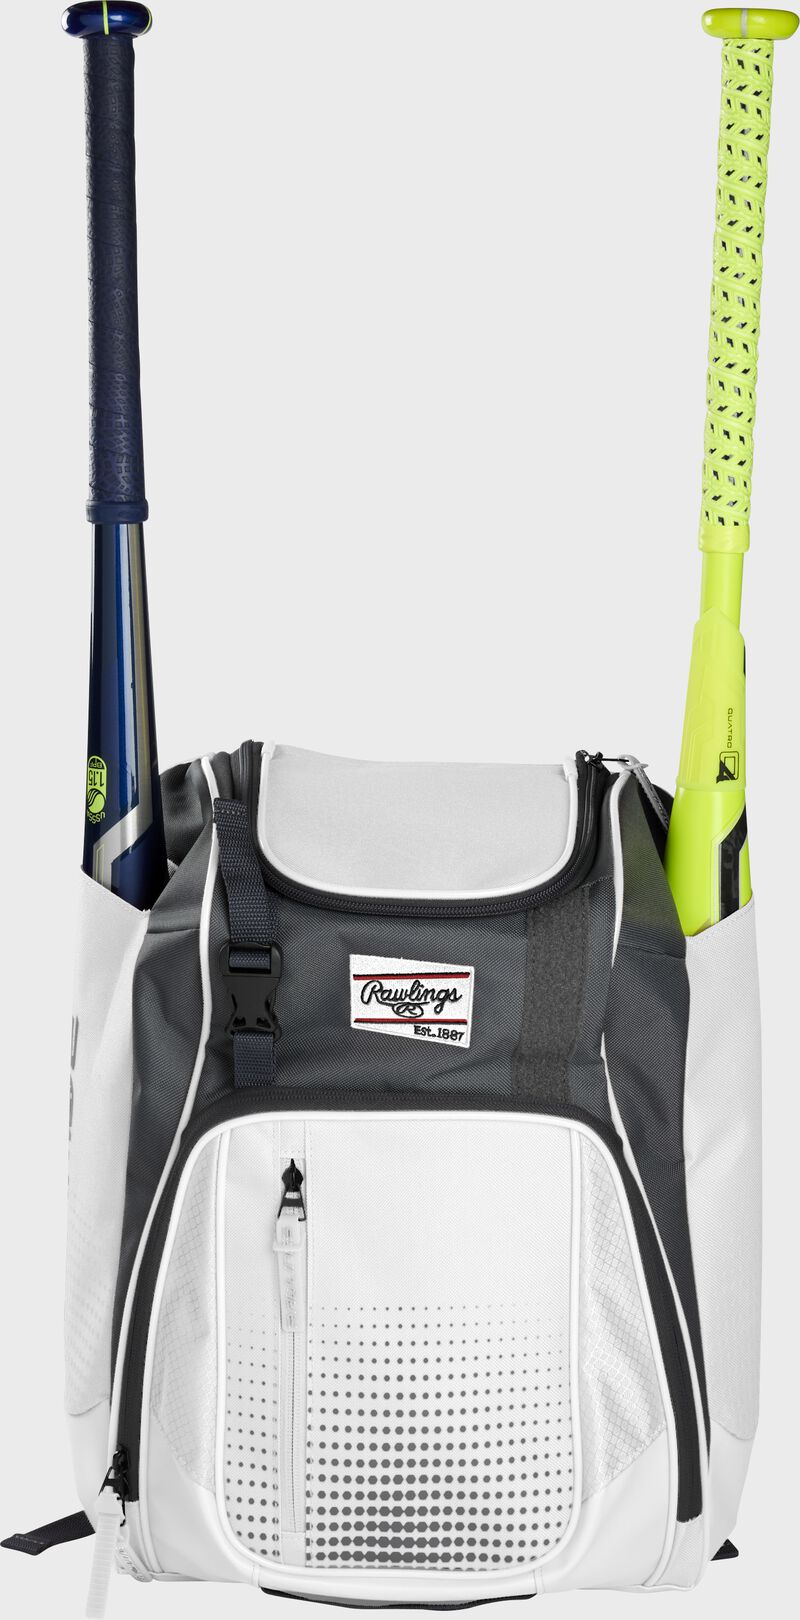 Front of a white Rawlings Franchise baseball backpack with two bats in the side sleeves - SKU: FRANBP-W